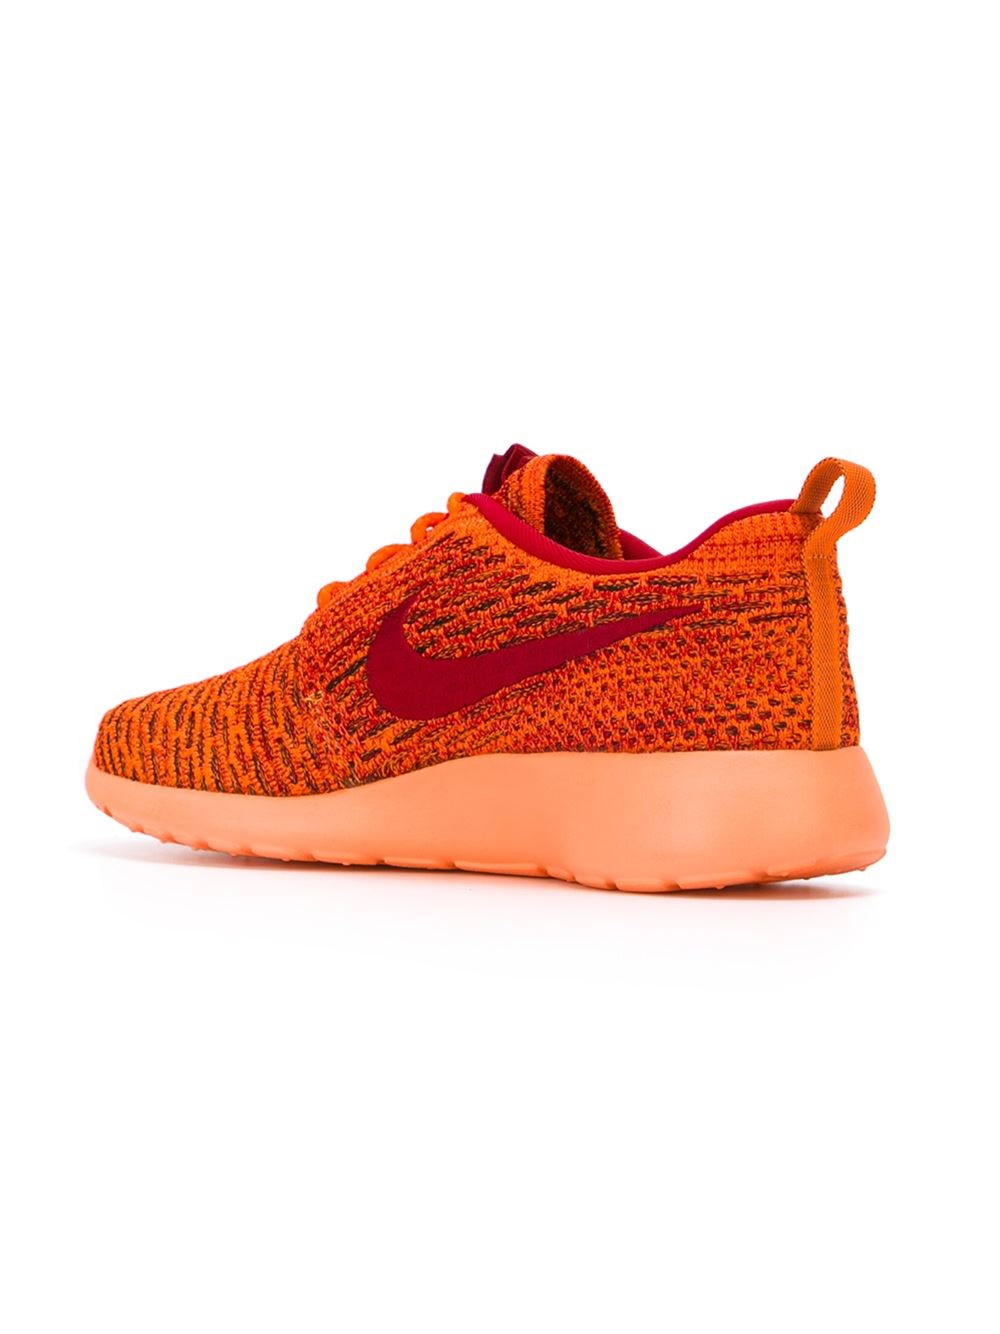 nike 39 roshe run flyknit 39 sneakers in yellow yellow. Black Bedroom Furniture Sets. Home Design Ideas